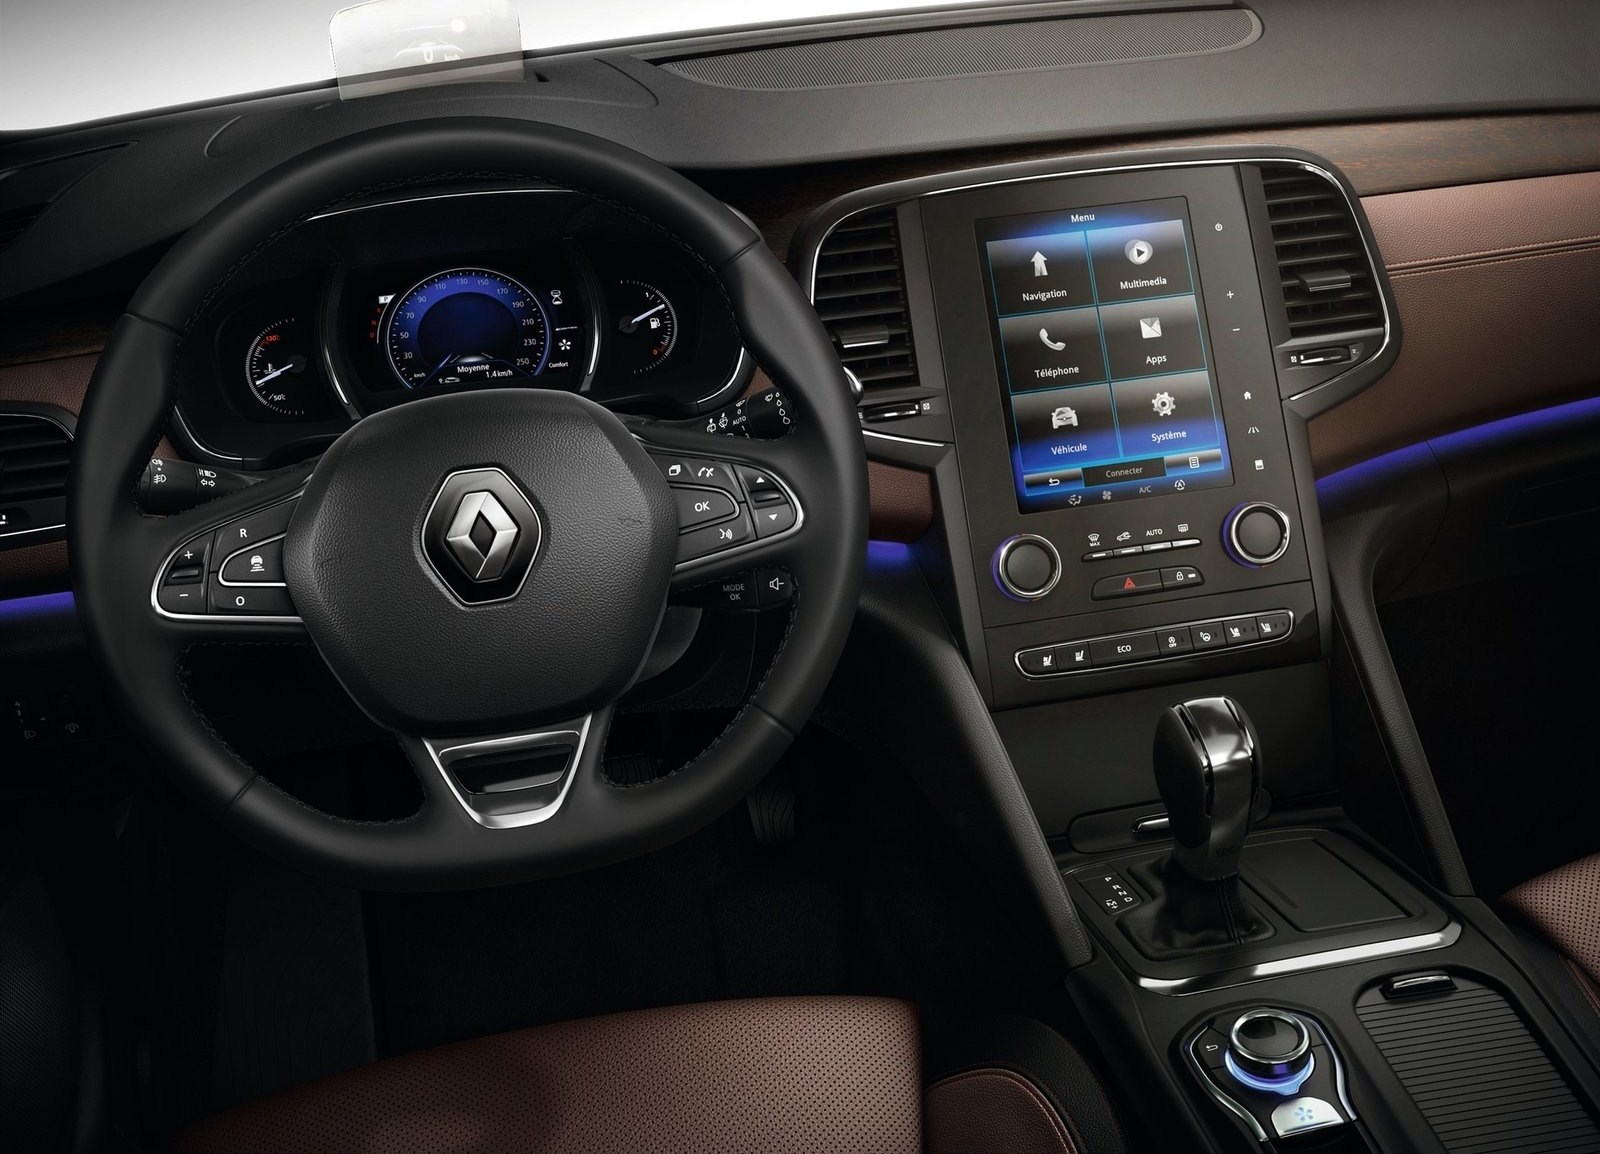 2016 Renault Talisman Cockpit And Dashboard (View 6 of 14)